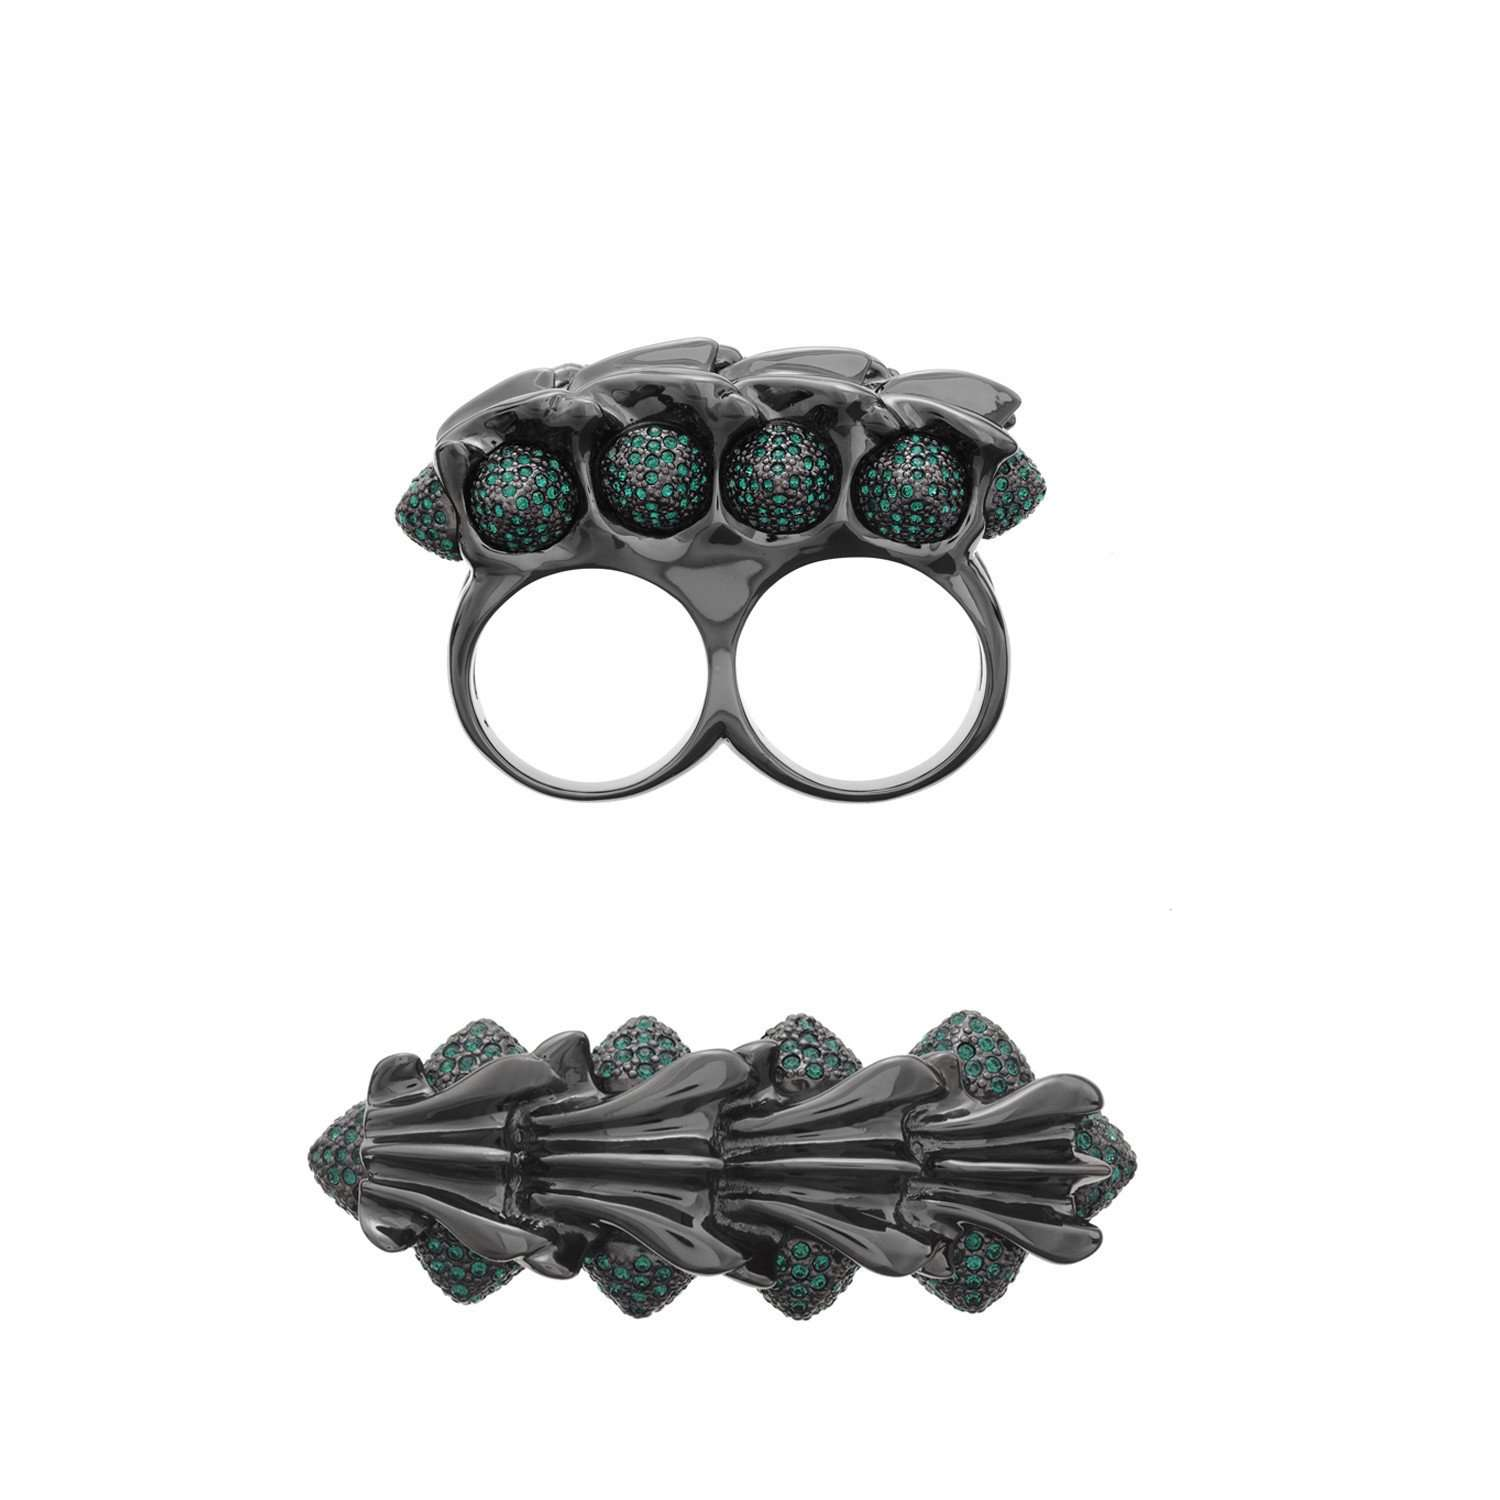 Twisted knuckleduster ring